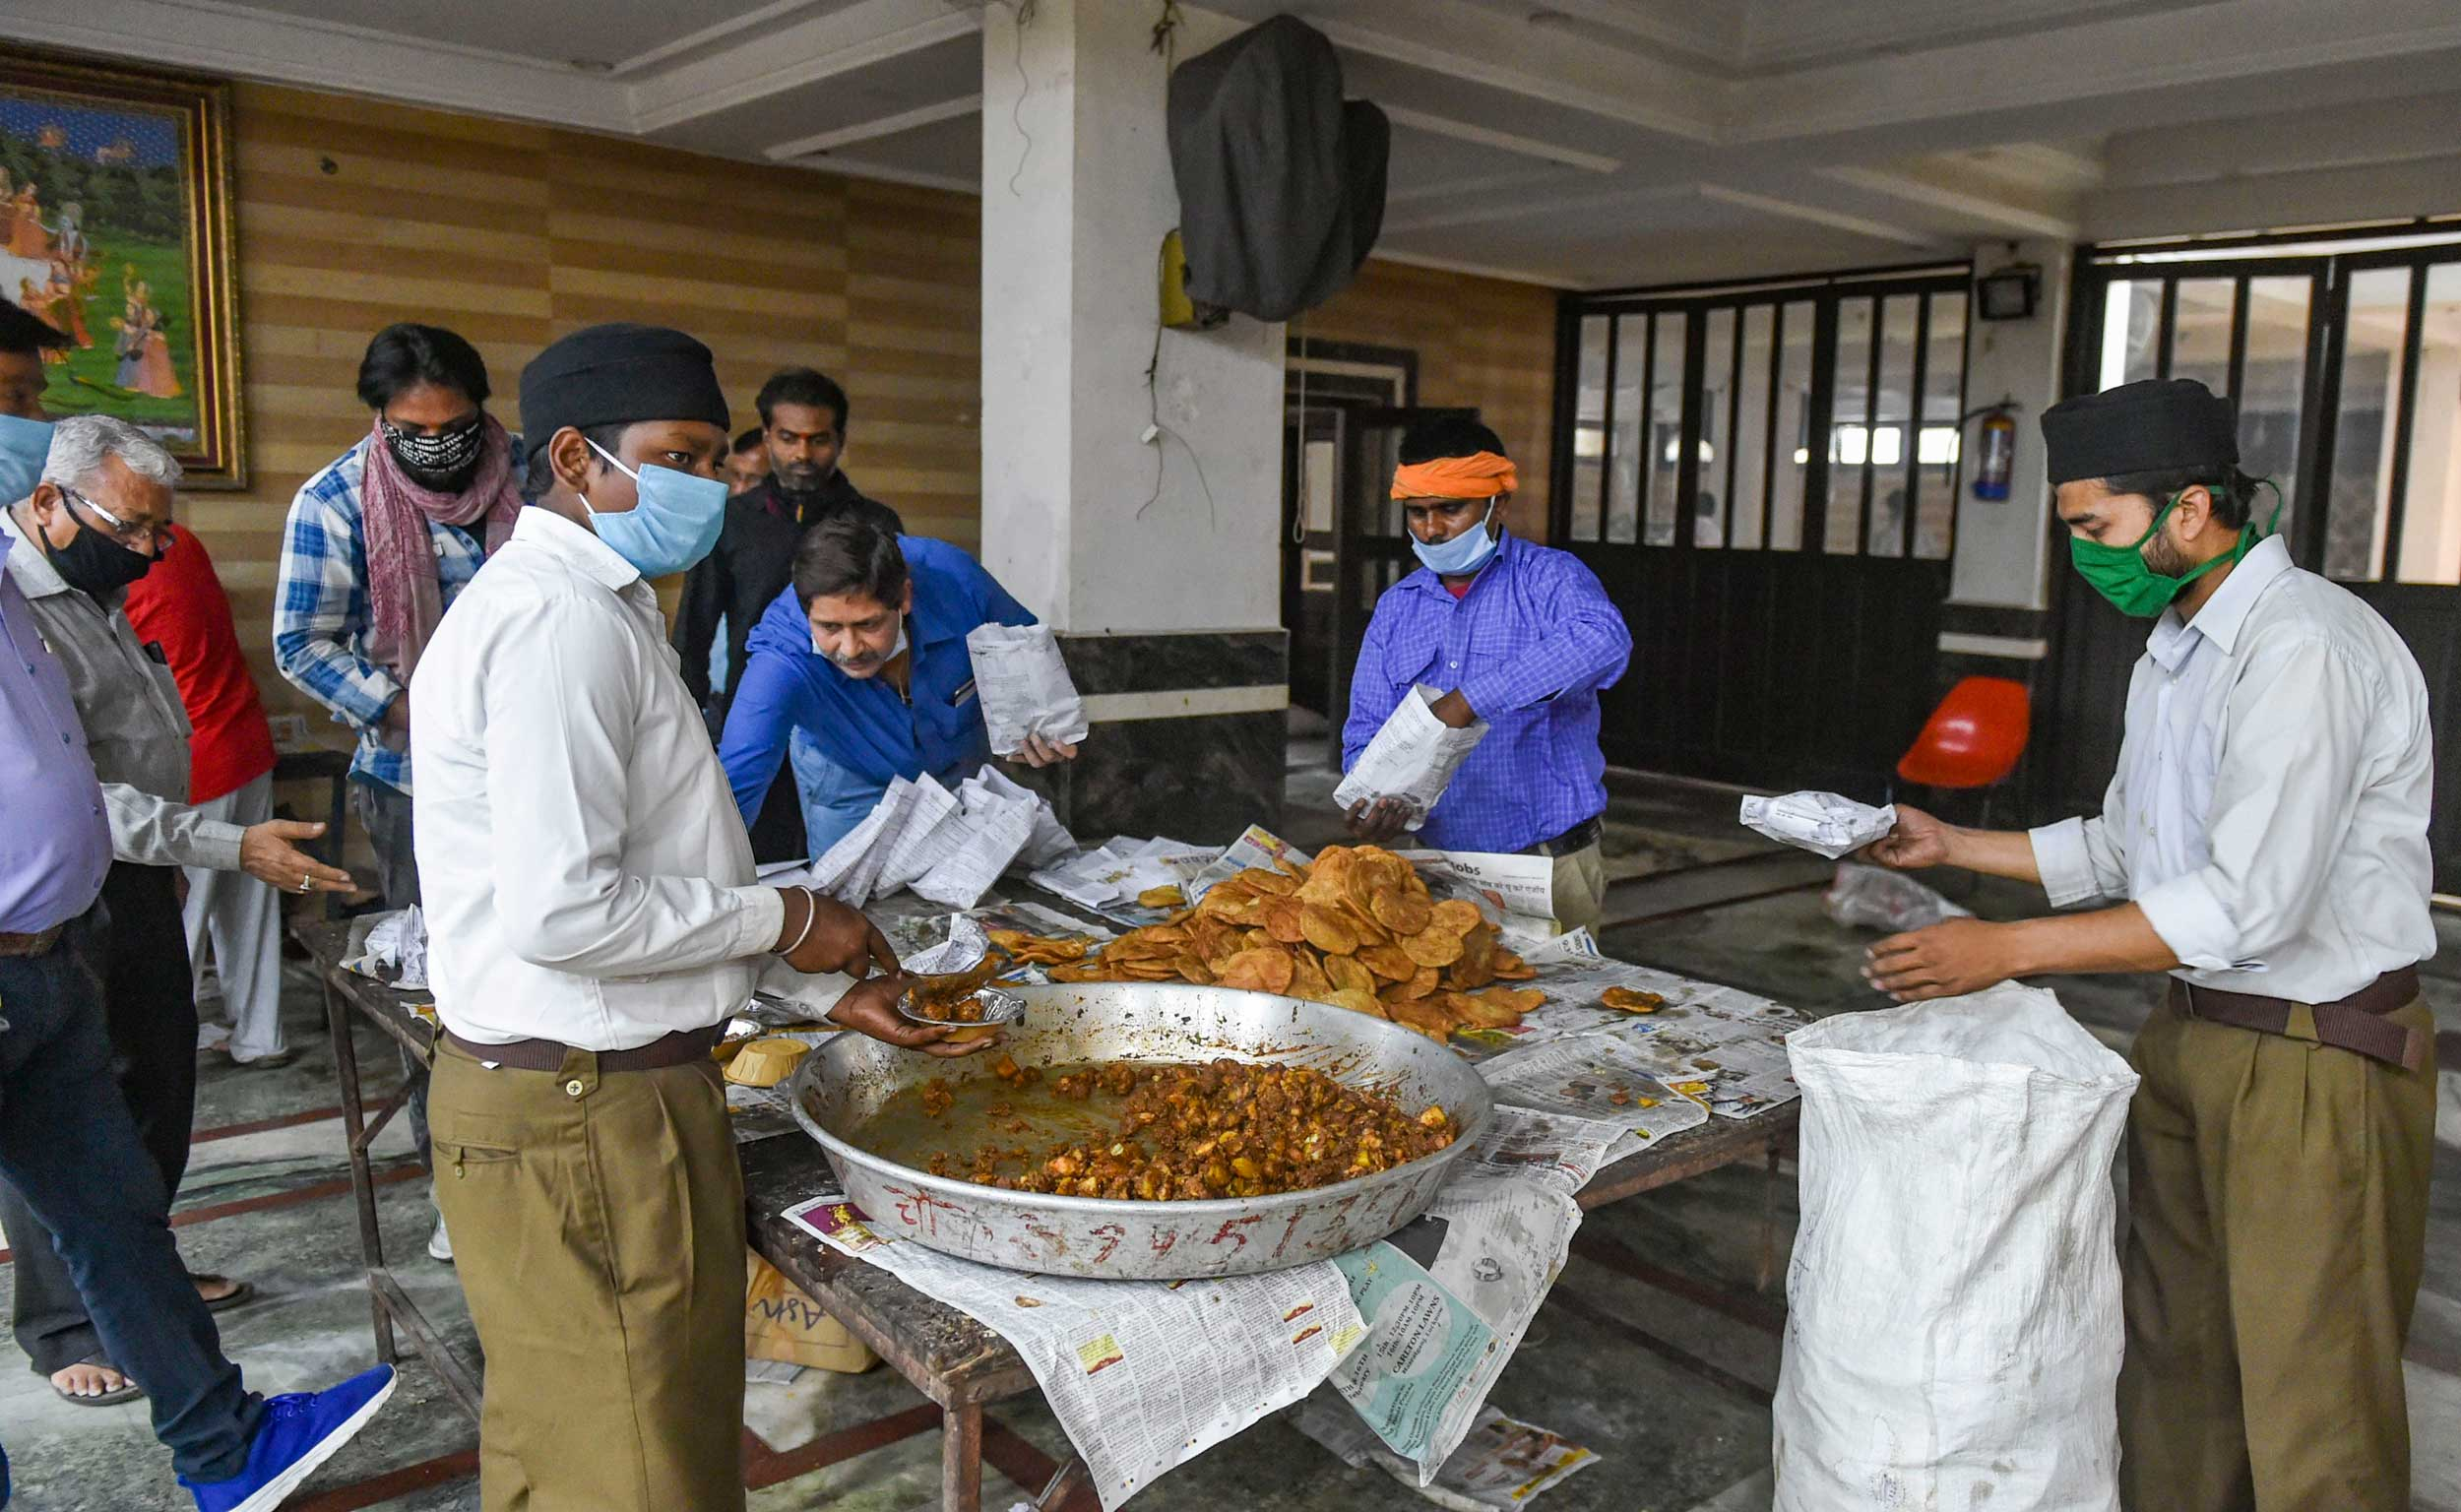 Volunteers pack food for the needy during the nationwide lockdown in Lucknow on Friday. Siraj could face up to one year in jail if the charges against him are proved.